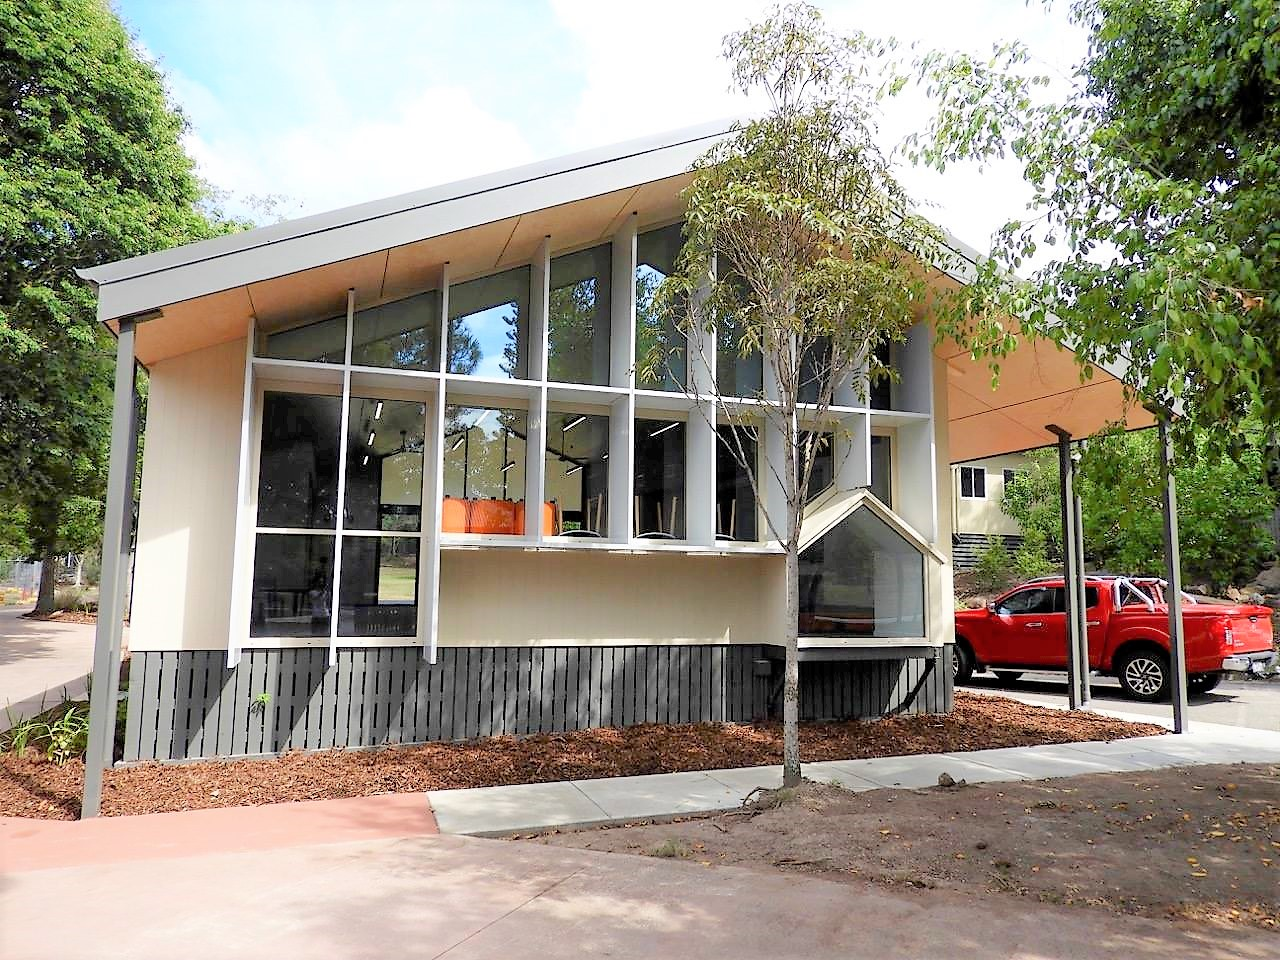 Brisbane Montessori School – New Library and Covered Sports Court